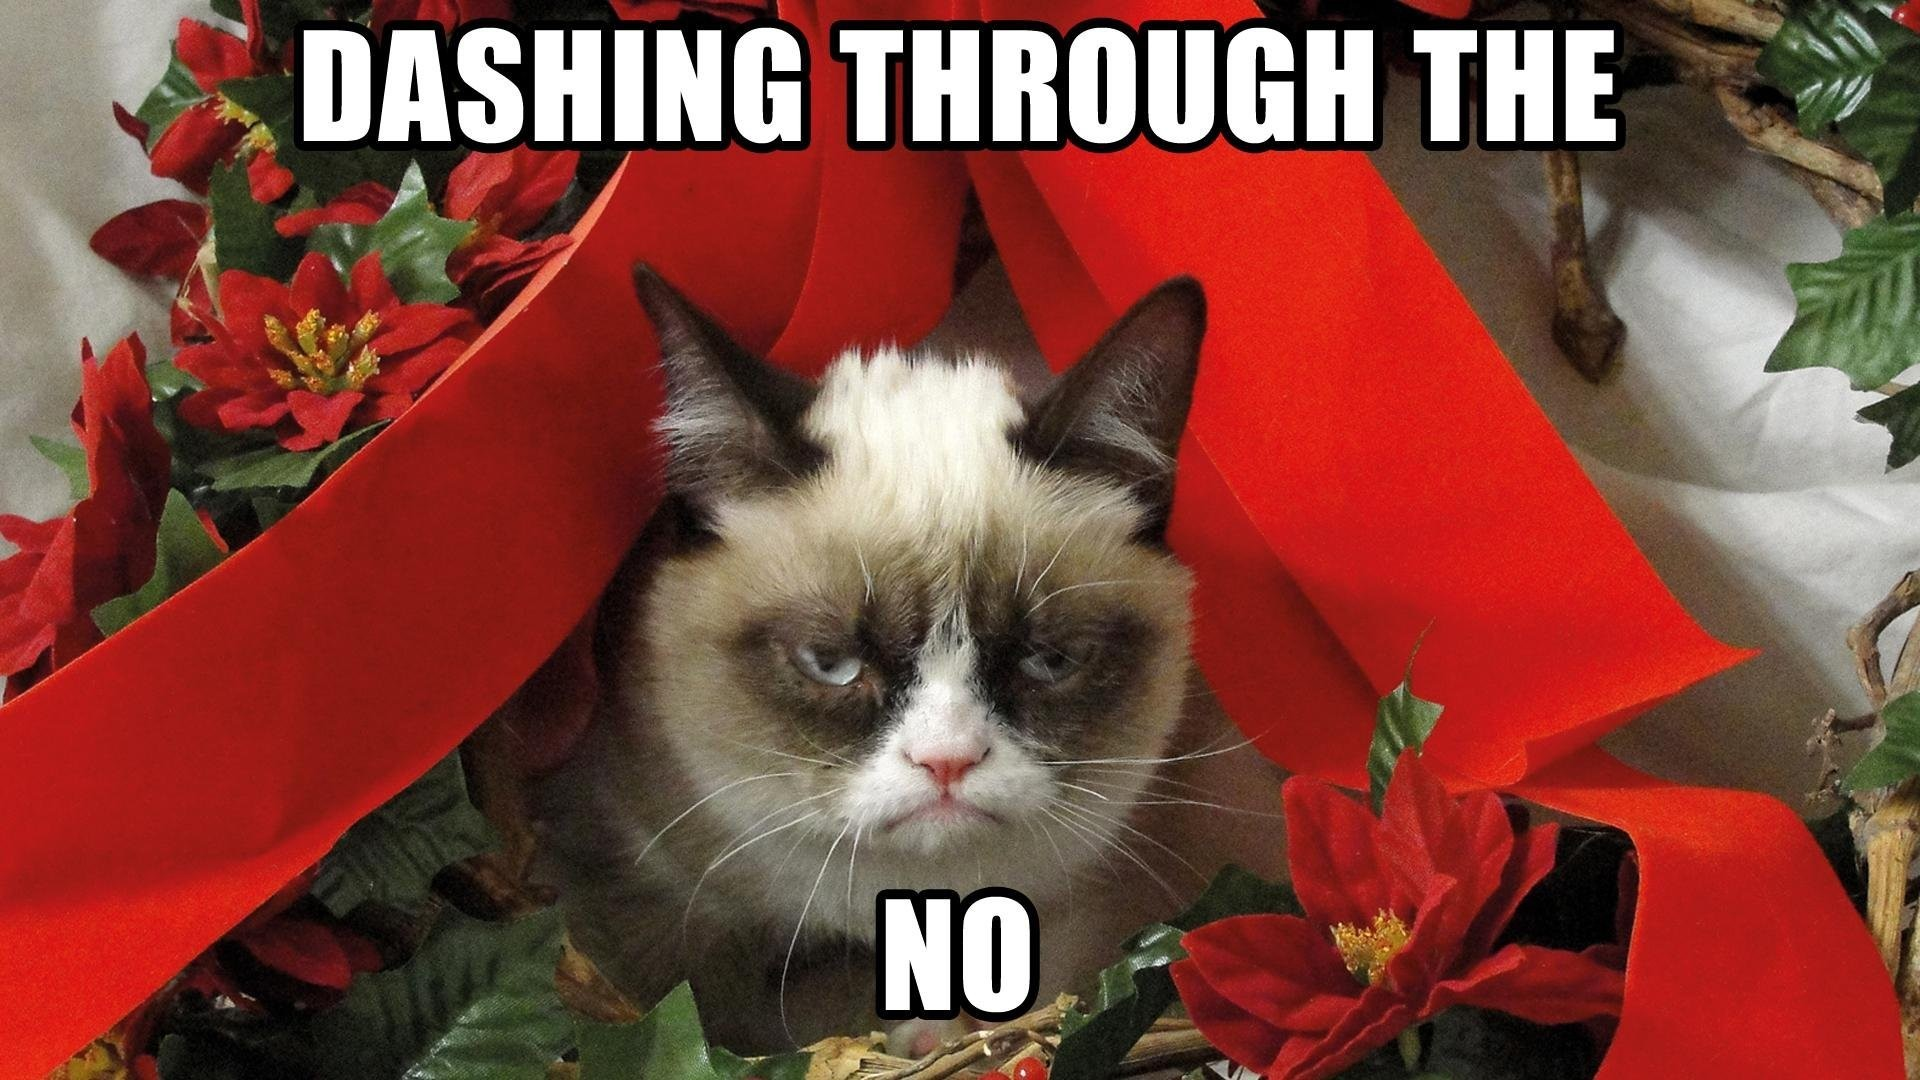 Funny Christmas Wallpaper.Funny Christmas Desktop Backgrounds 60 Pictures